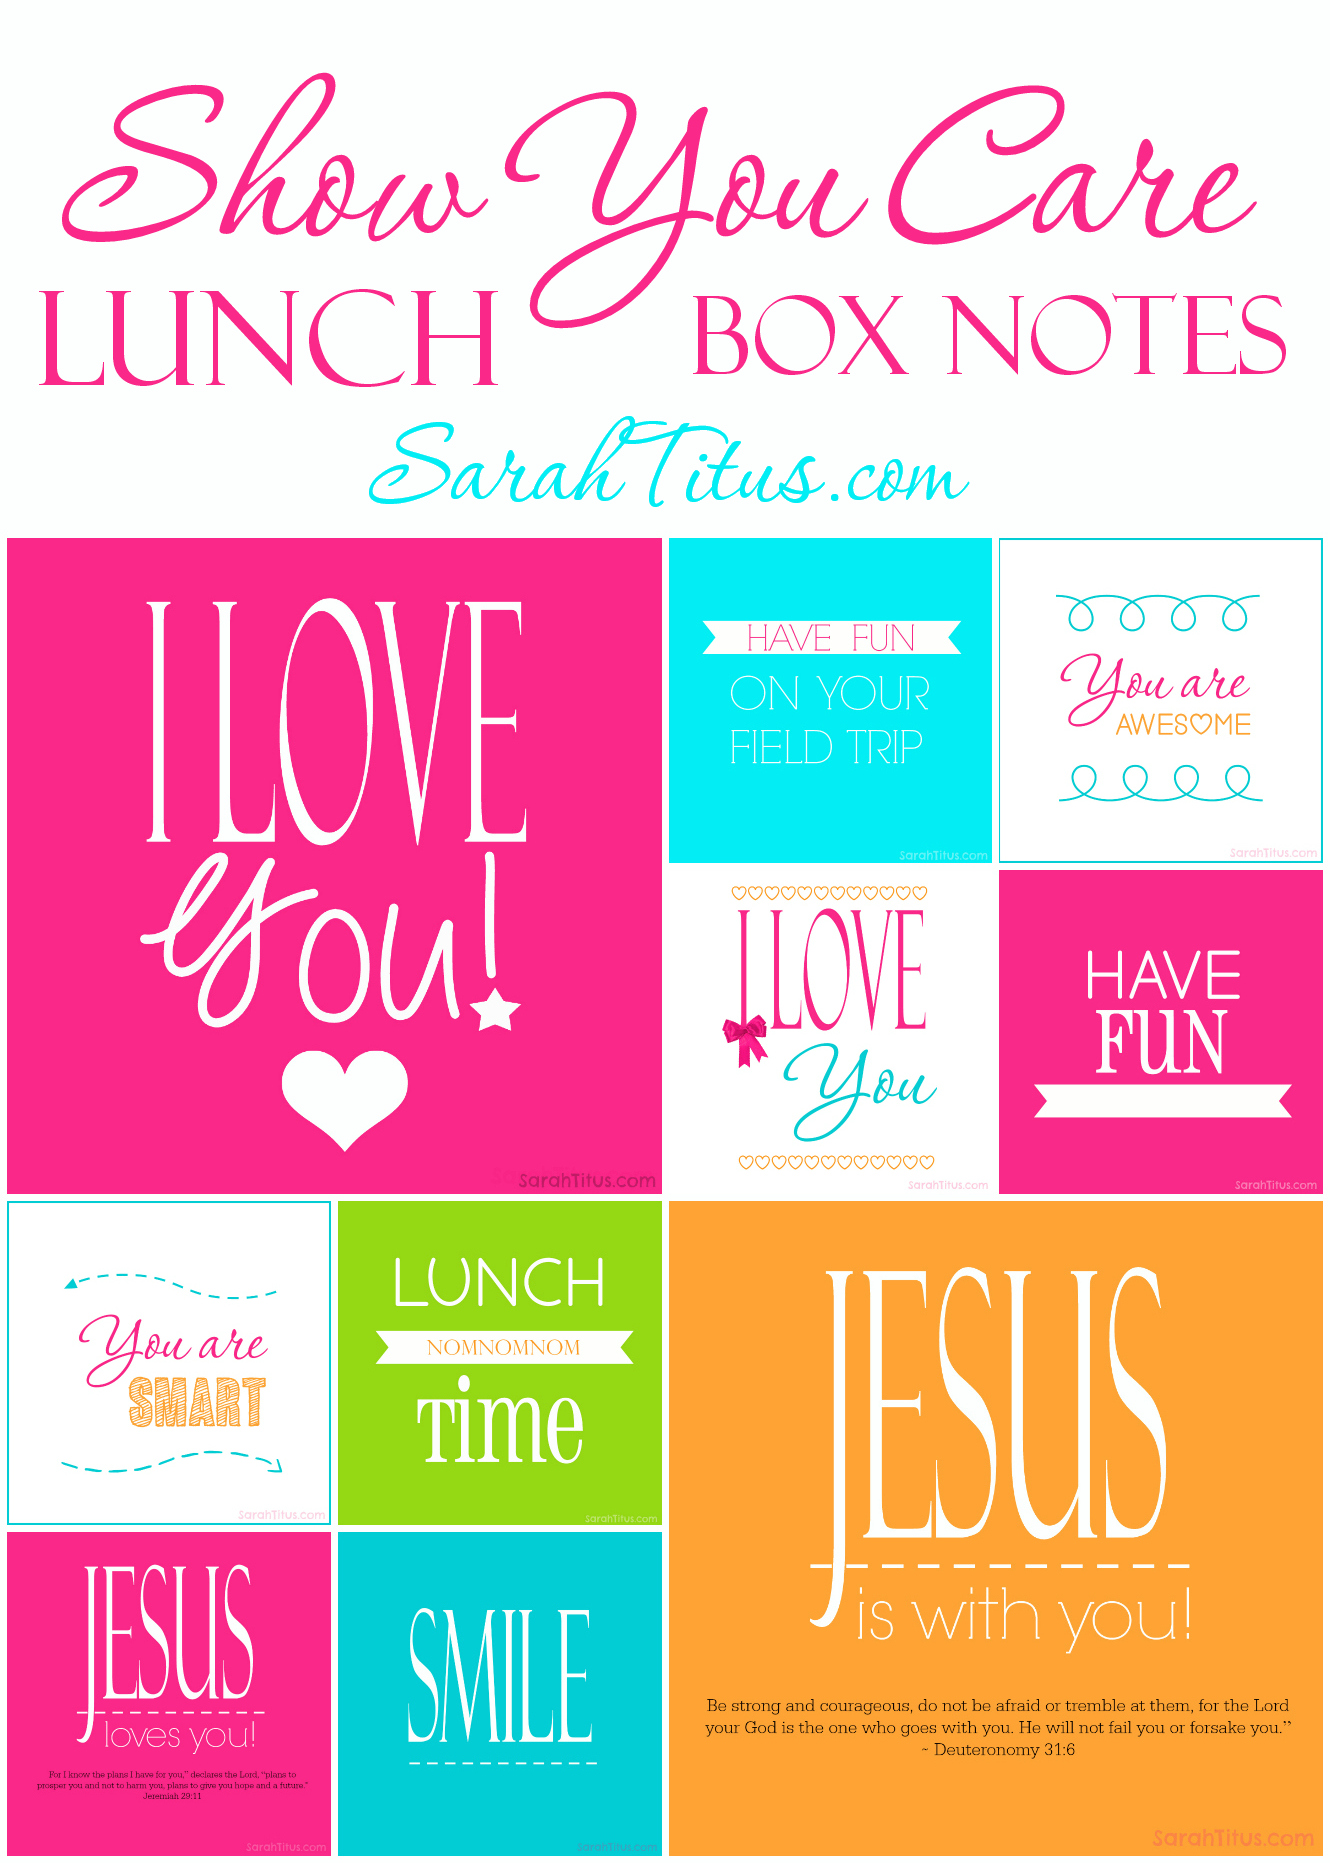 Show You Care: Free Printable Lunch Box Notes for Kids